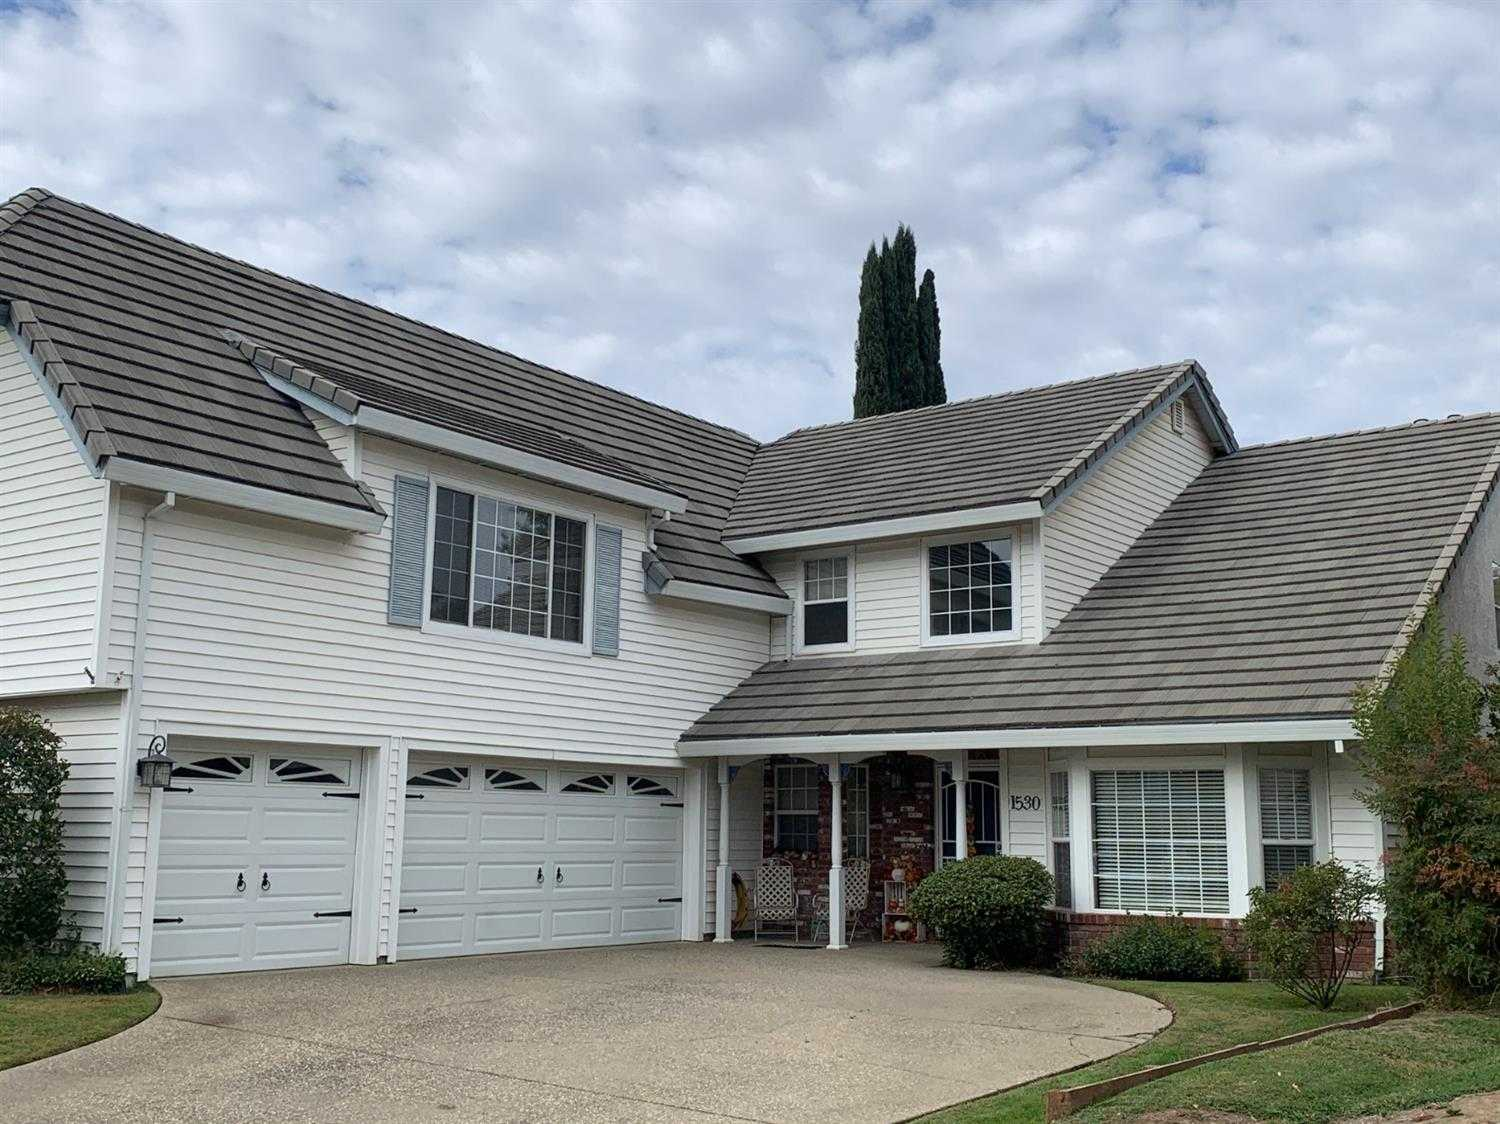 $664,000 - 4Br/3Ba -  for Sale in Pleasant Grove #2, Roseville